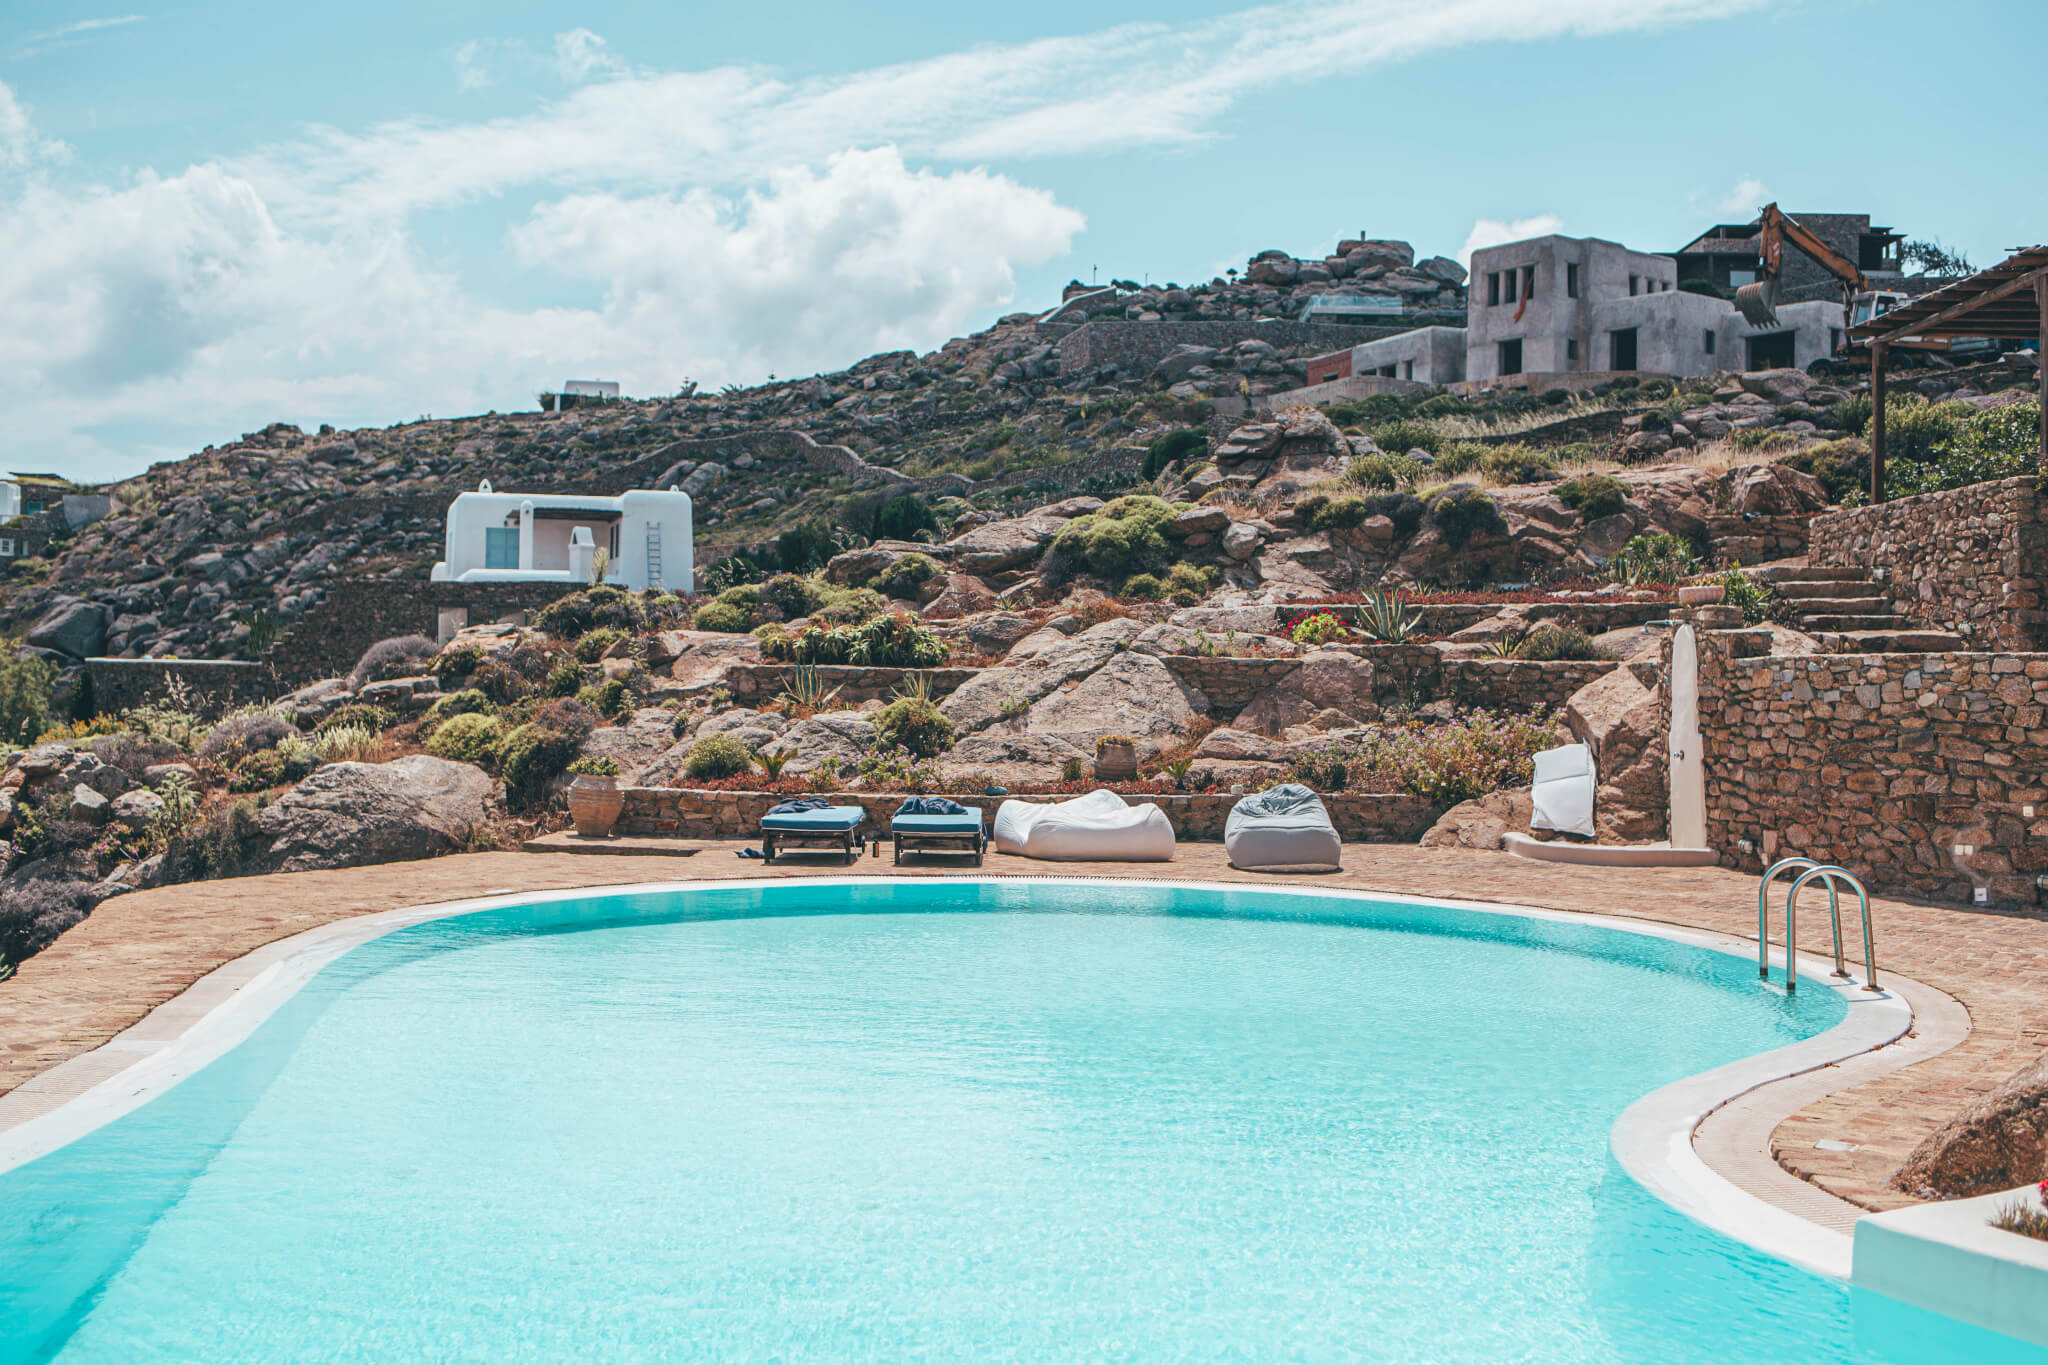 Mykonos luxury mixed with the cosmopolitan feel makes this island hard to miss when hopping around the Aegean Sea